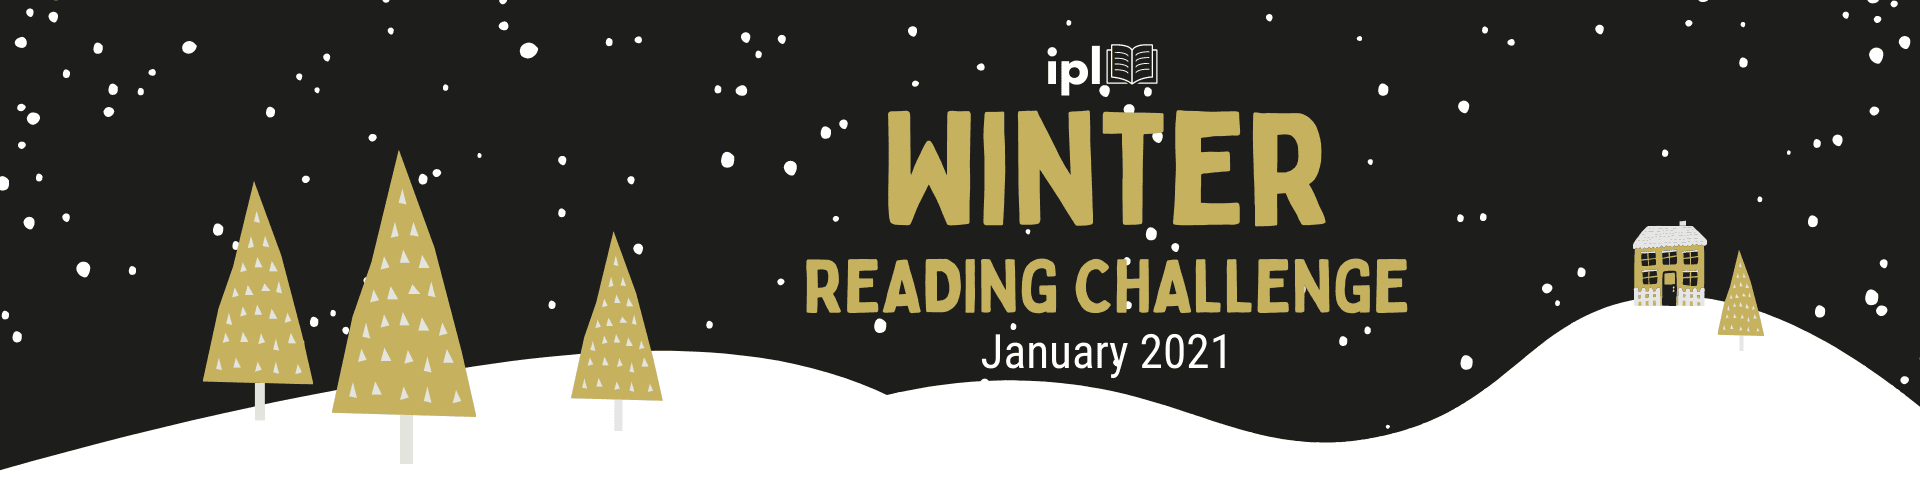 winter reading 2021 website body banner